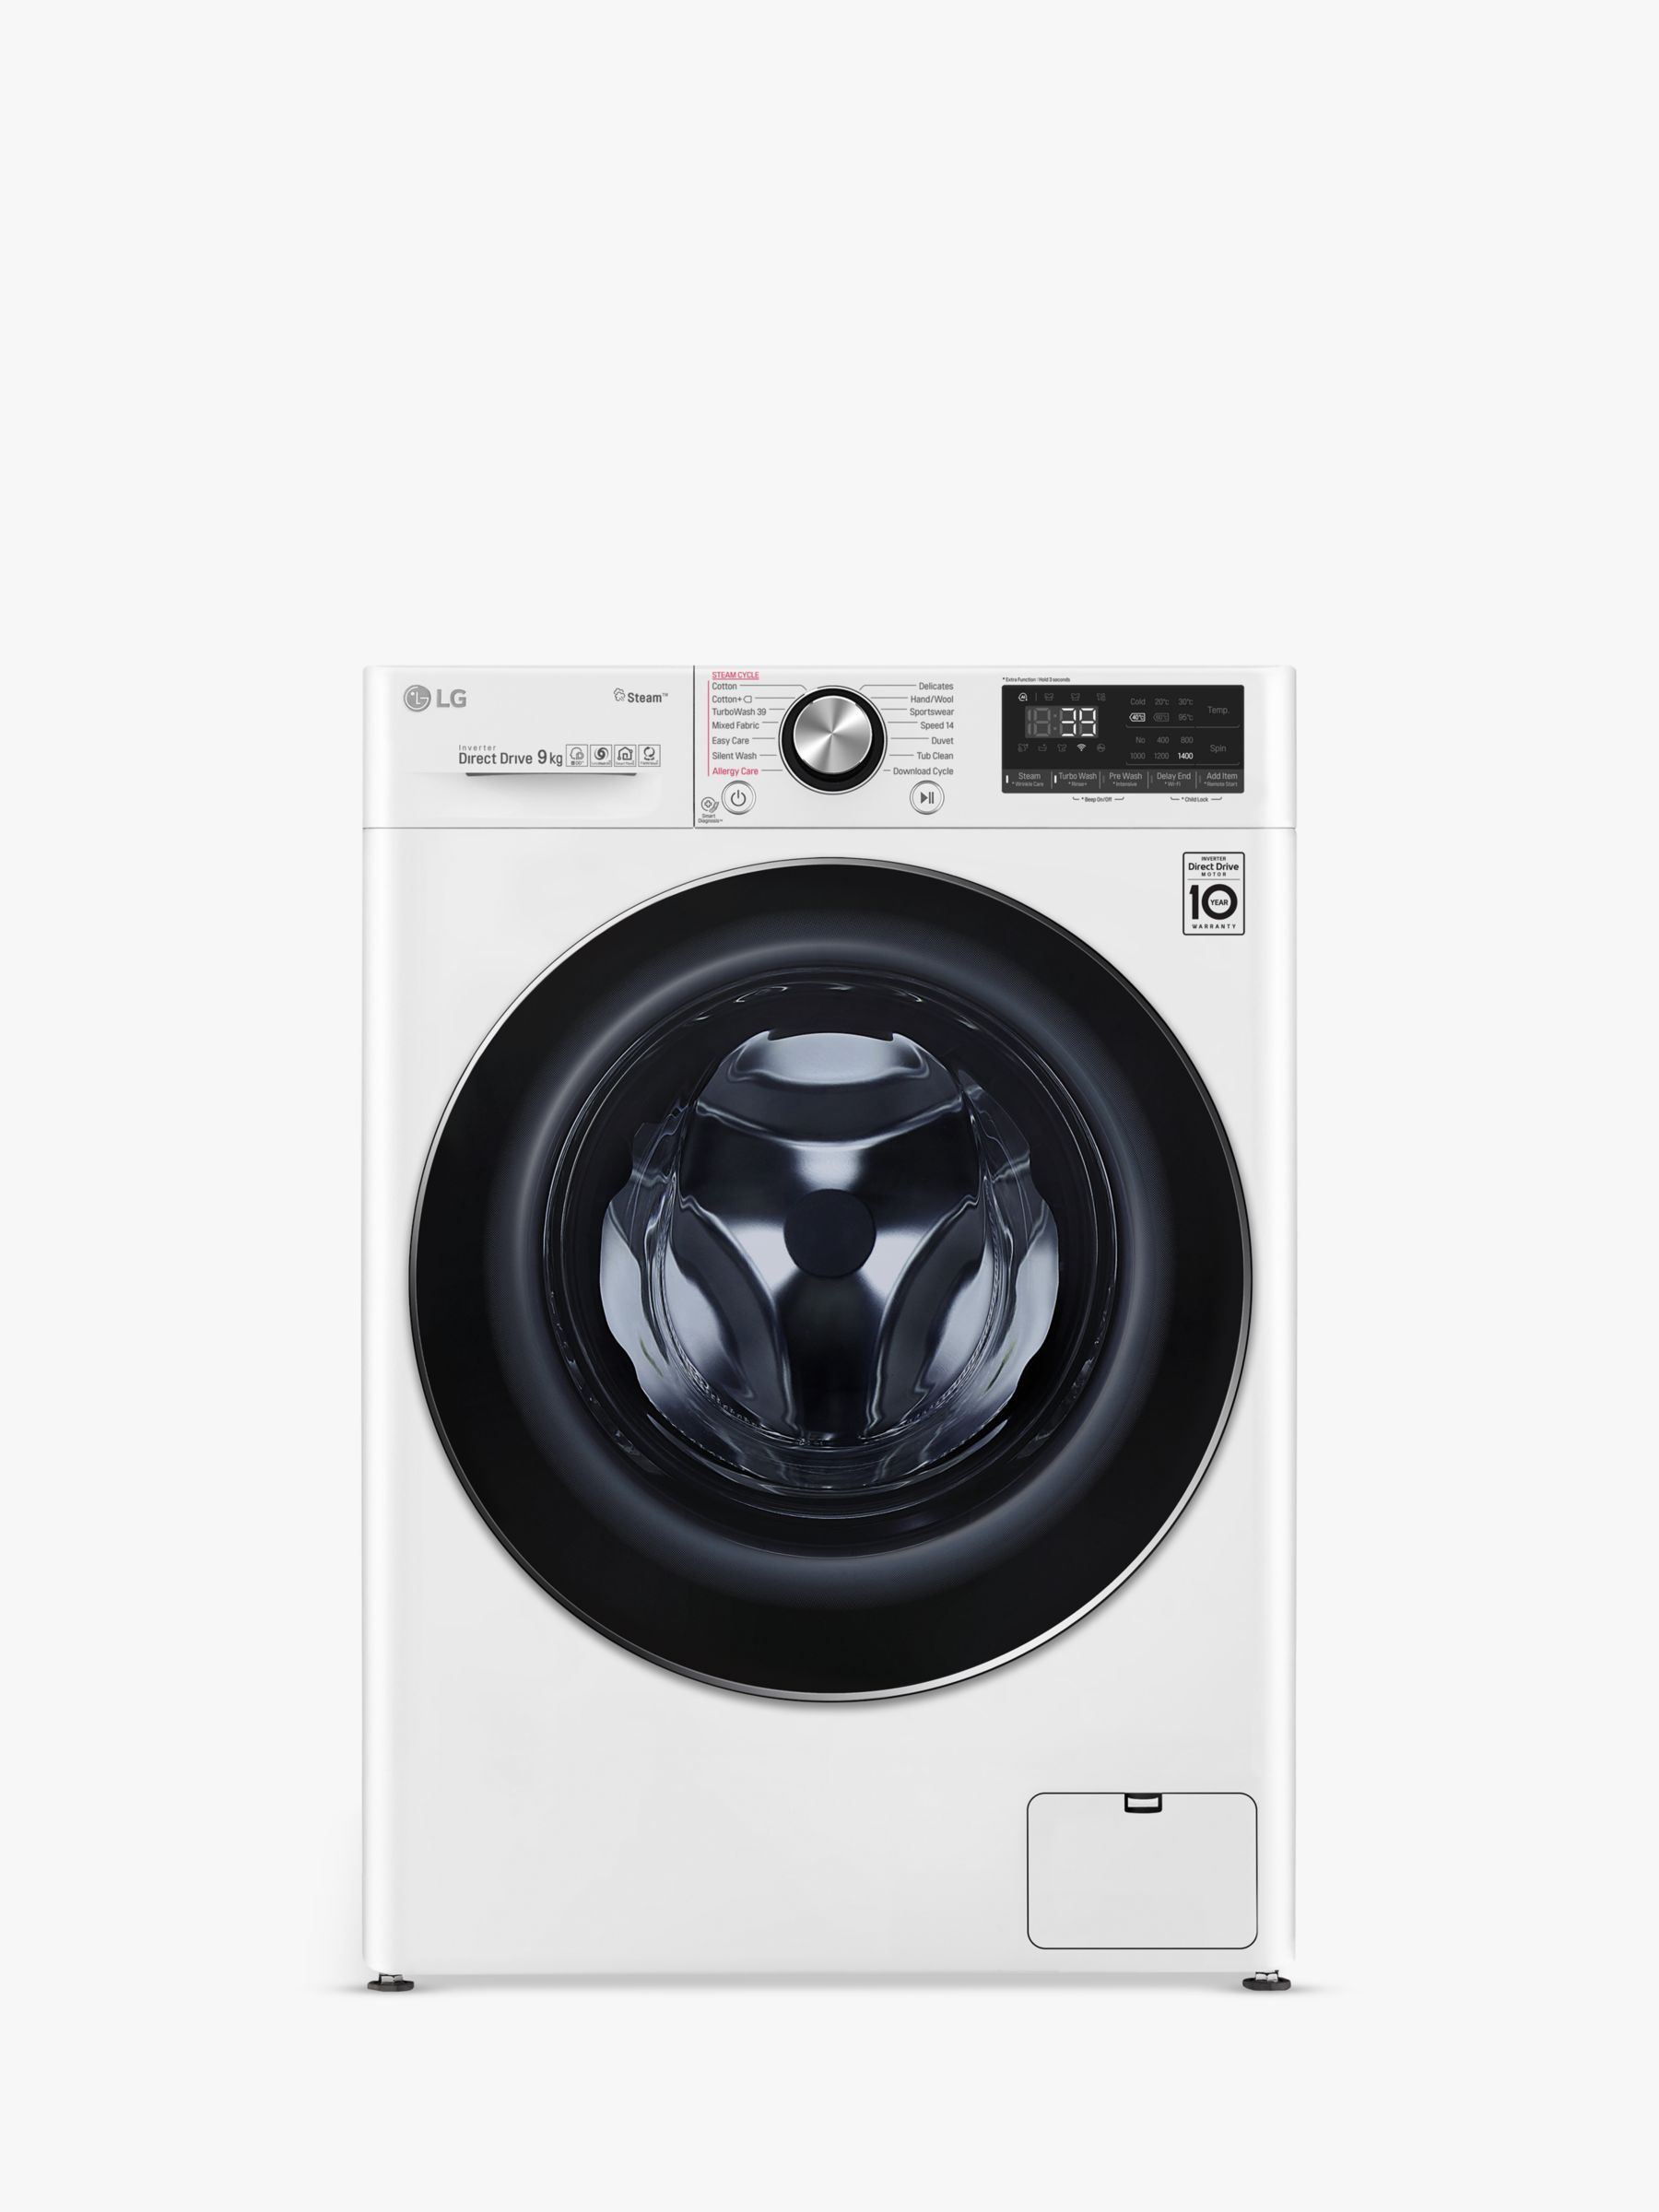 LG LG F4V909WTS Freestanding Washing Machine, 9kg Load, A+++ Energy Rating, 1400rpm Spin, White